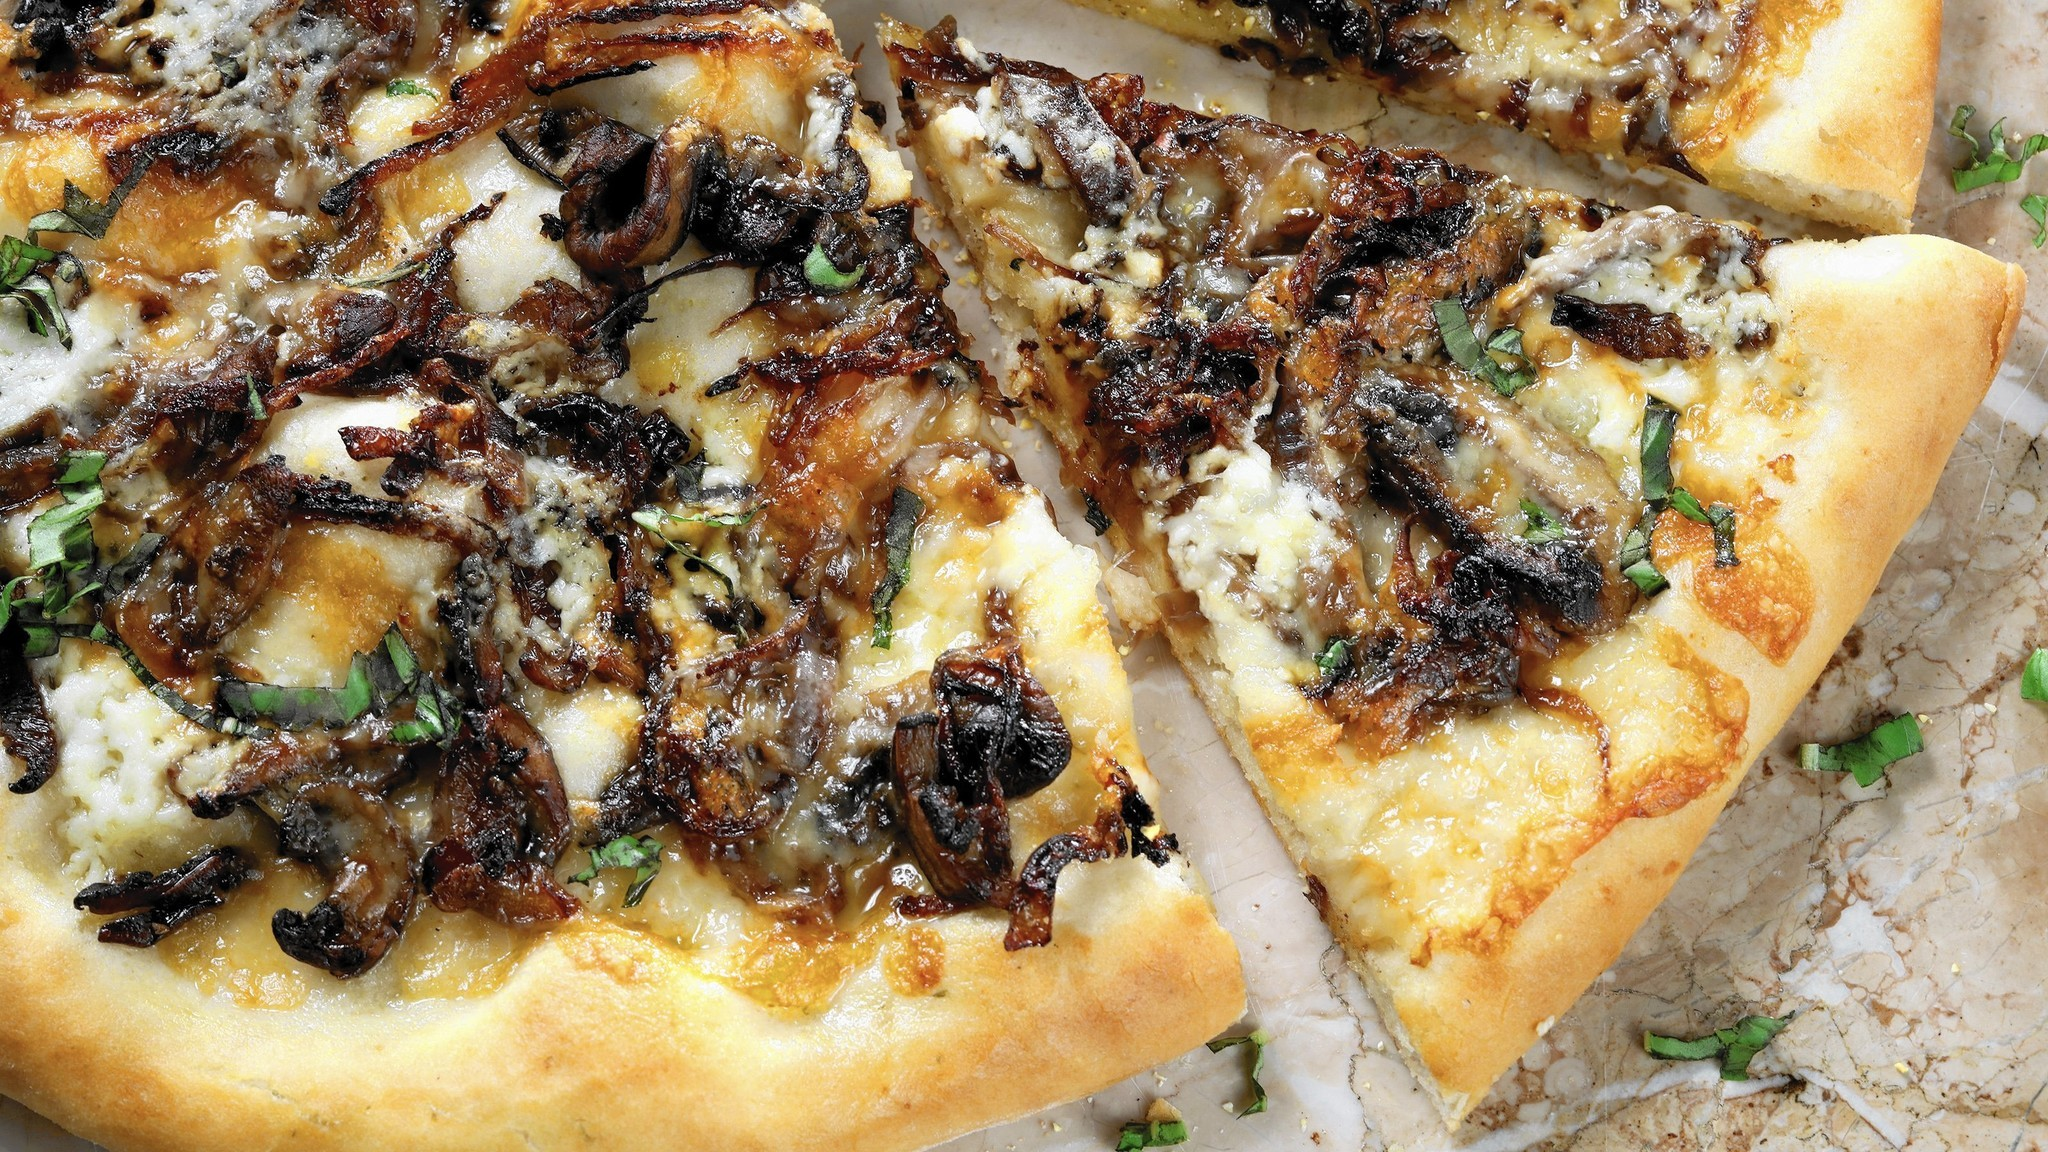 The Zen of homemade pizza: Losing yourself in the doing